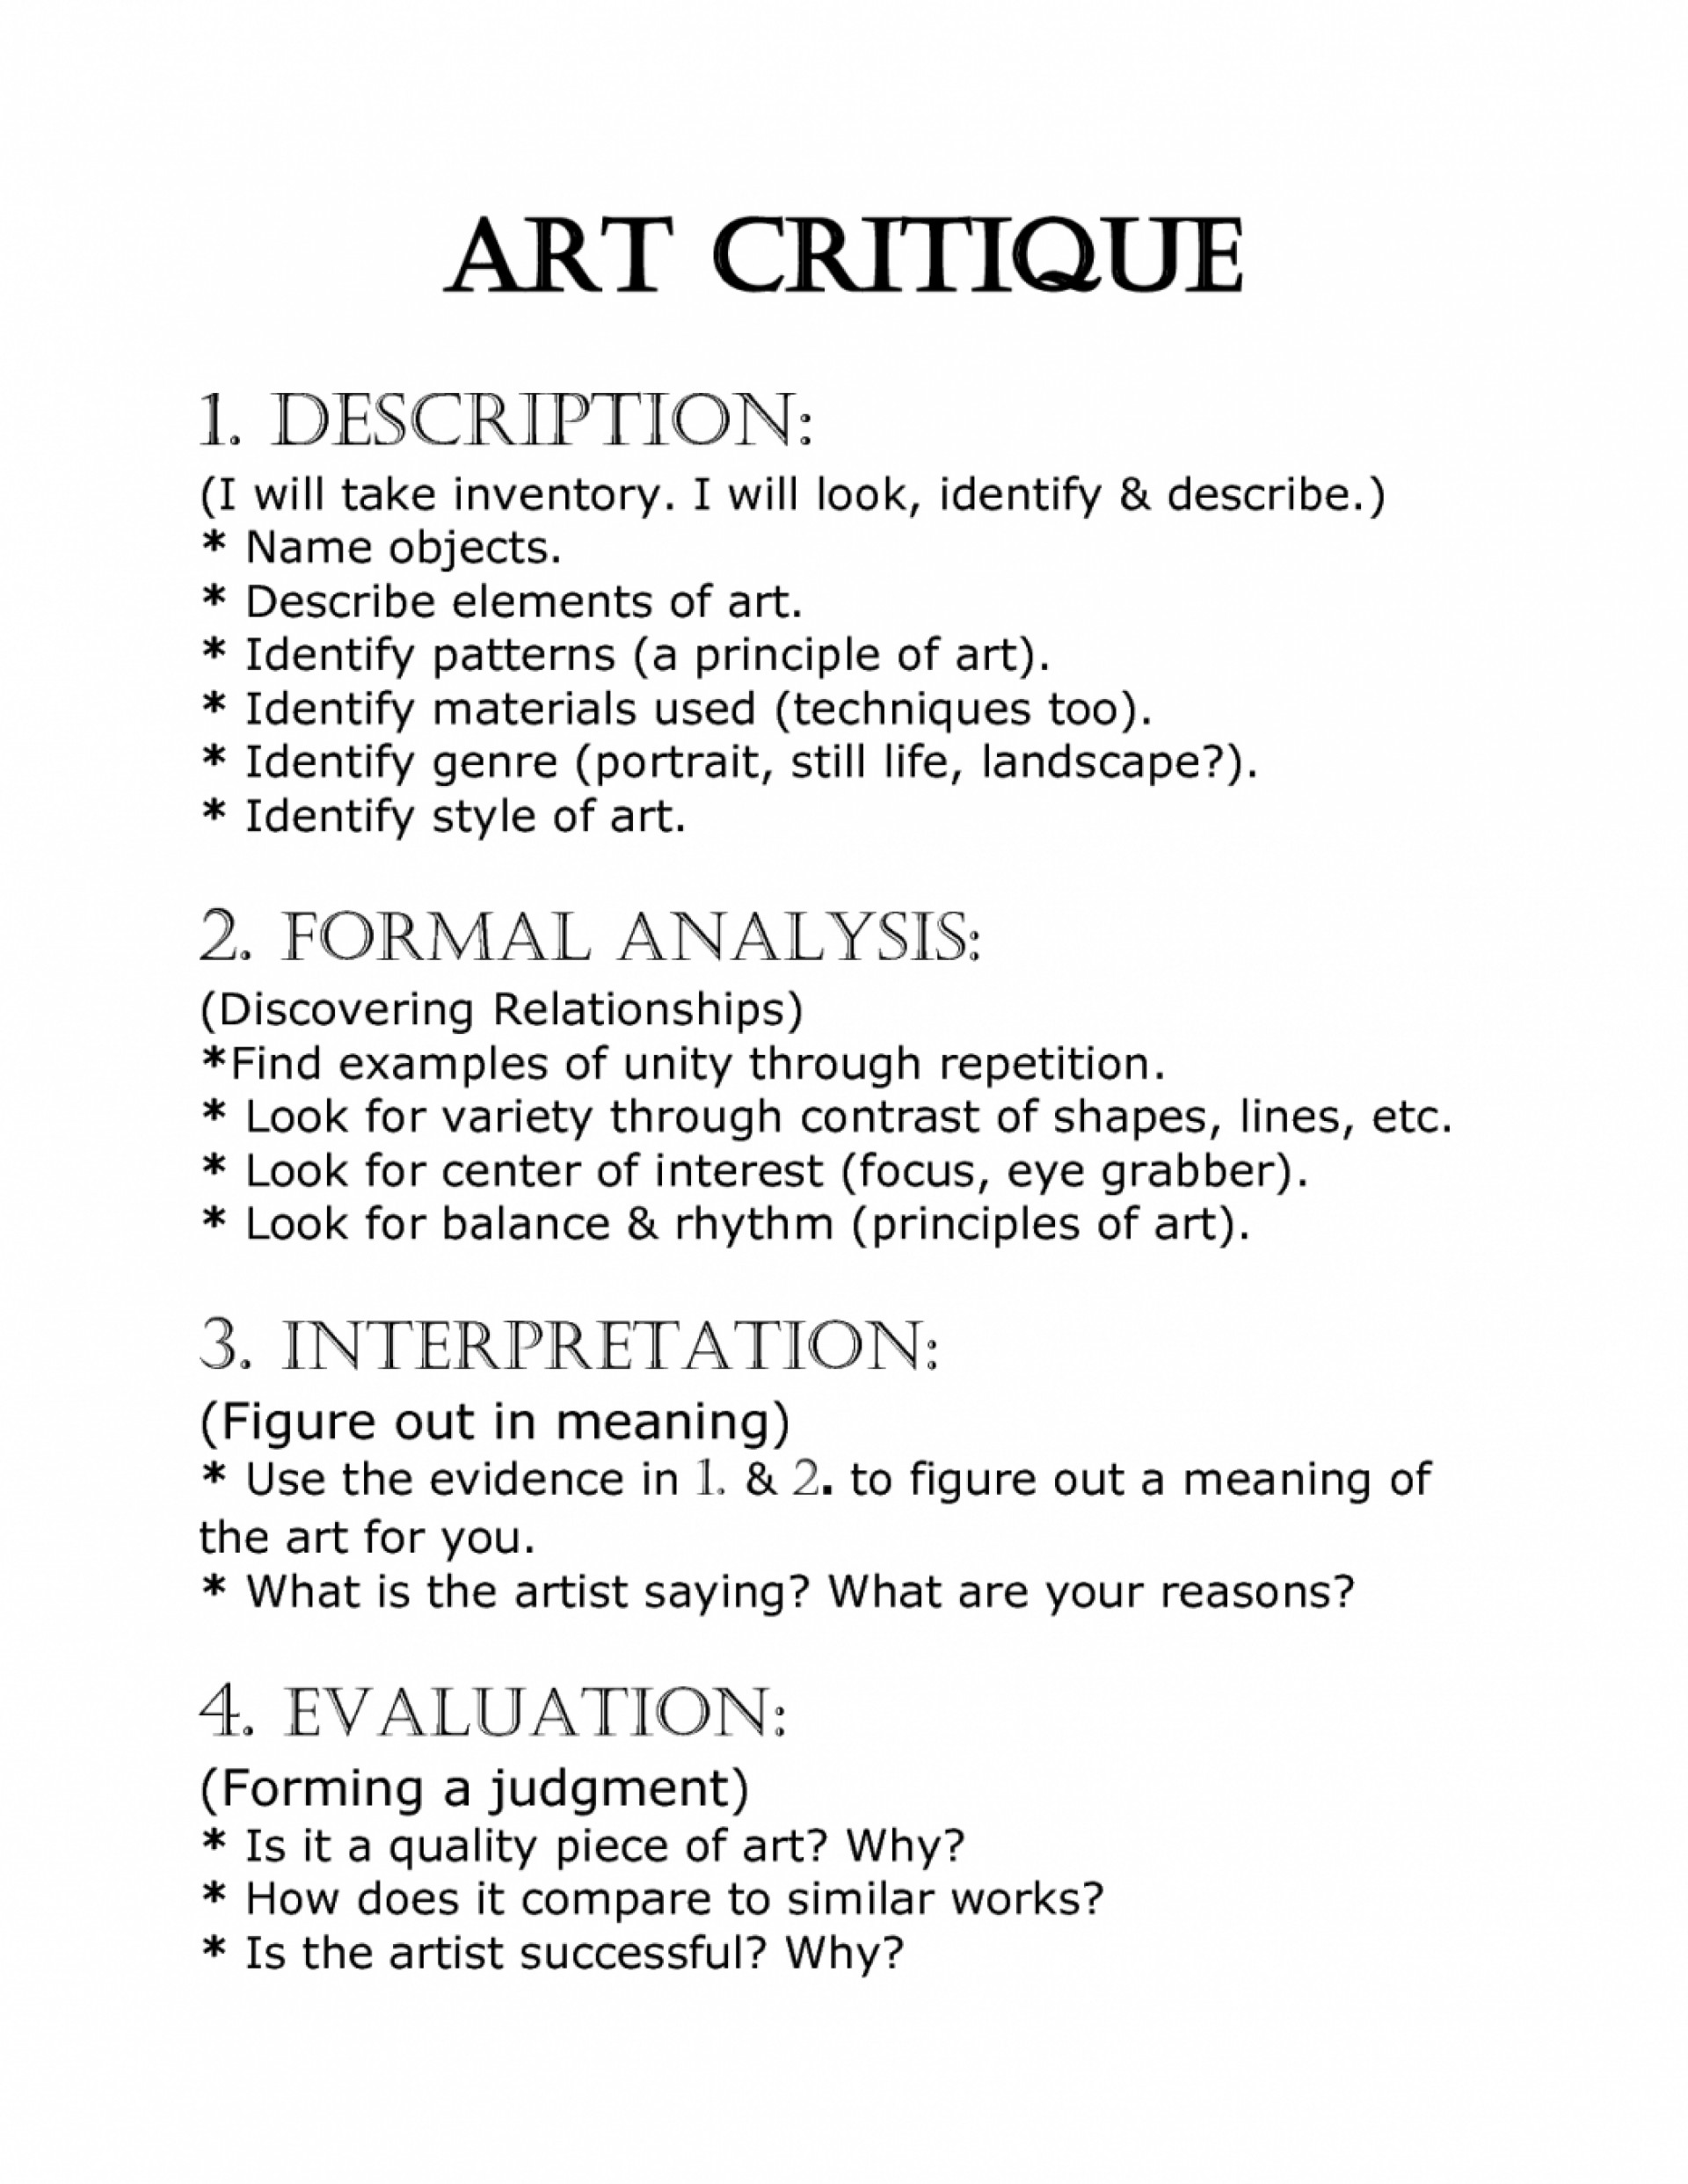 006 Art Essayss Critique Essay Question Ana Scholarship Edexcel Extended Introduction Free Conclusion College 1048x1356 Phenomenal History Pop Outline 1920